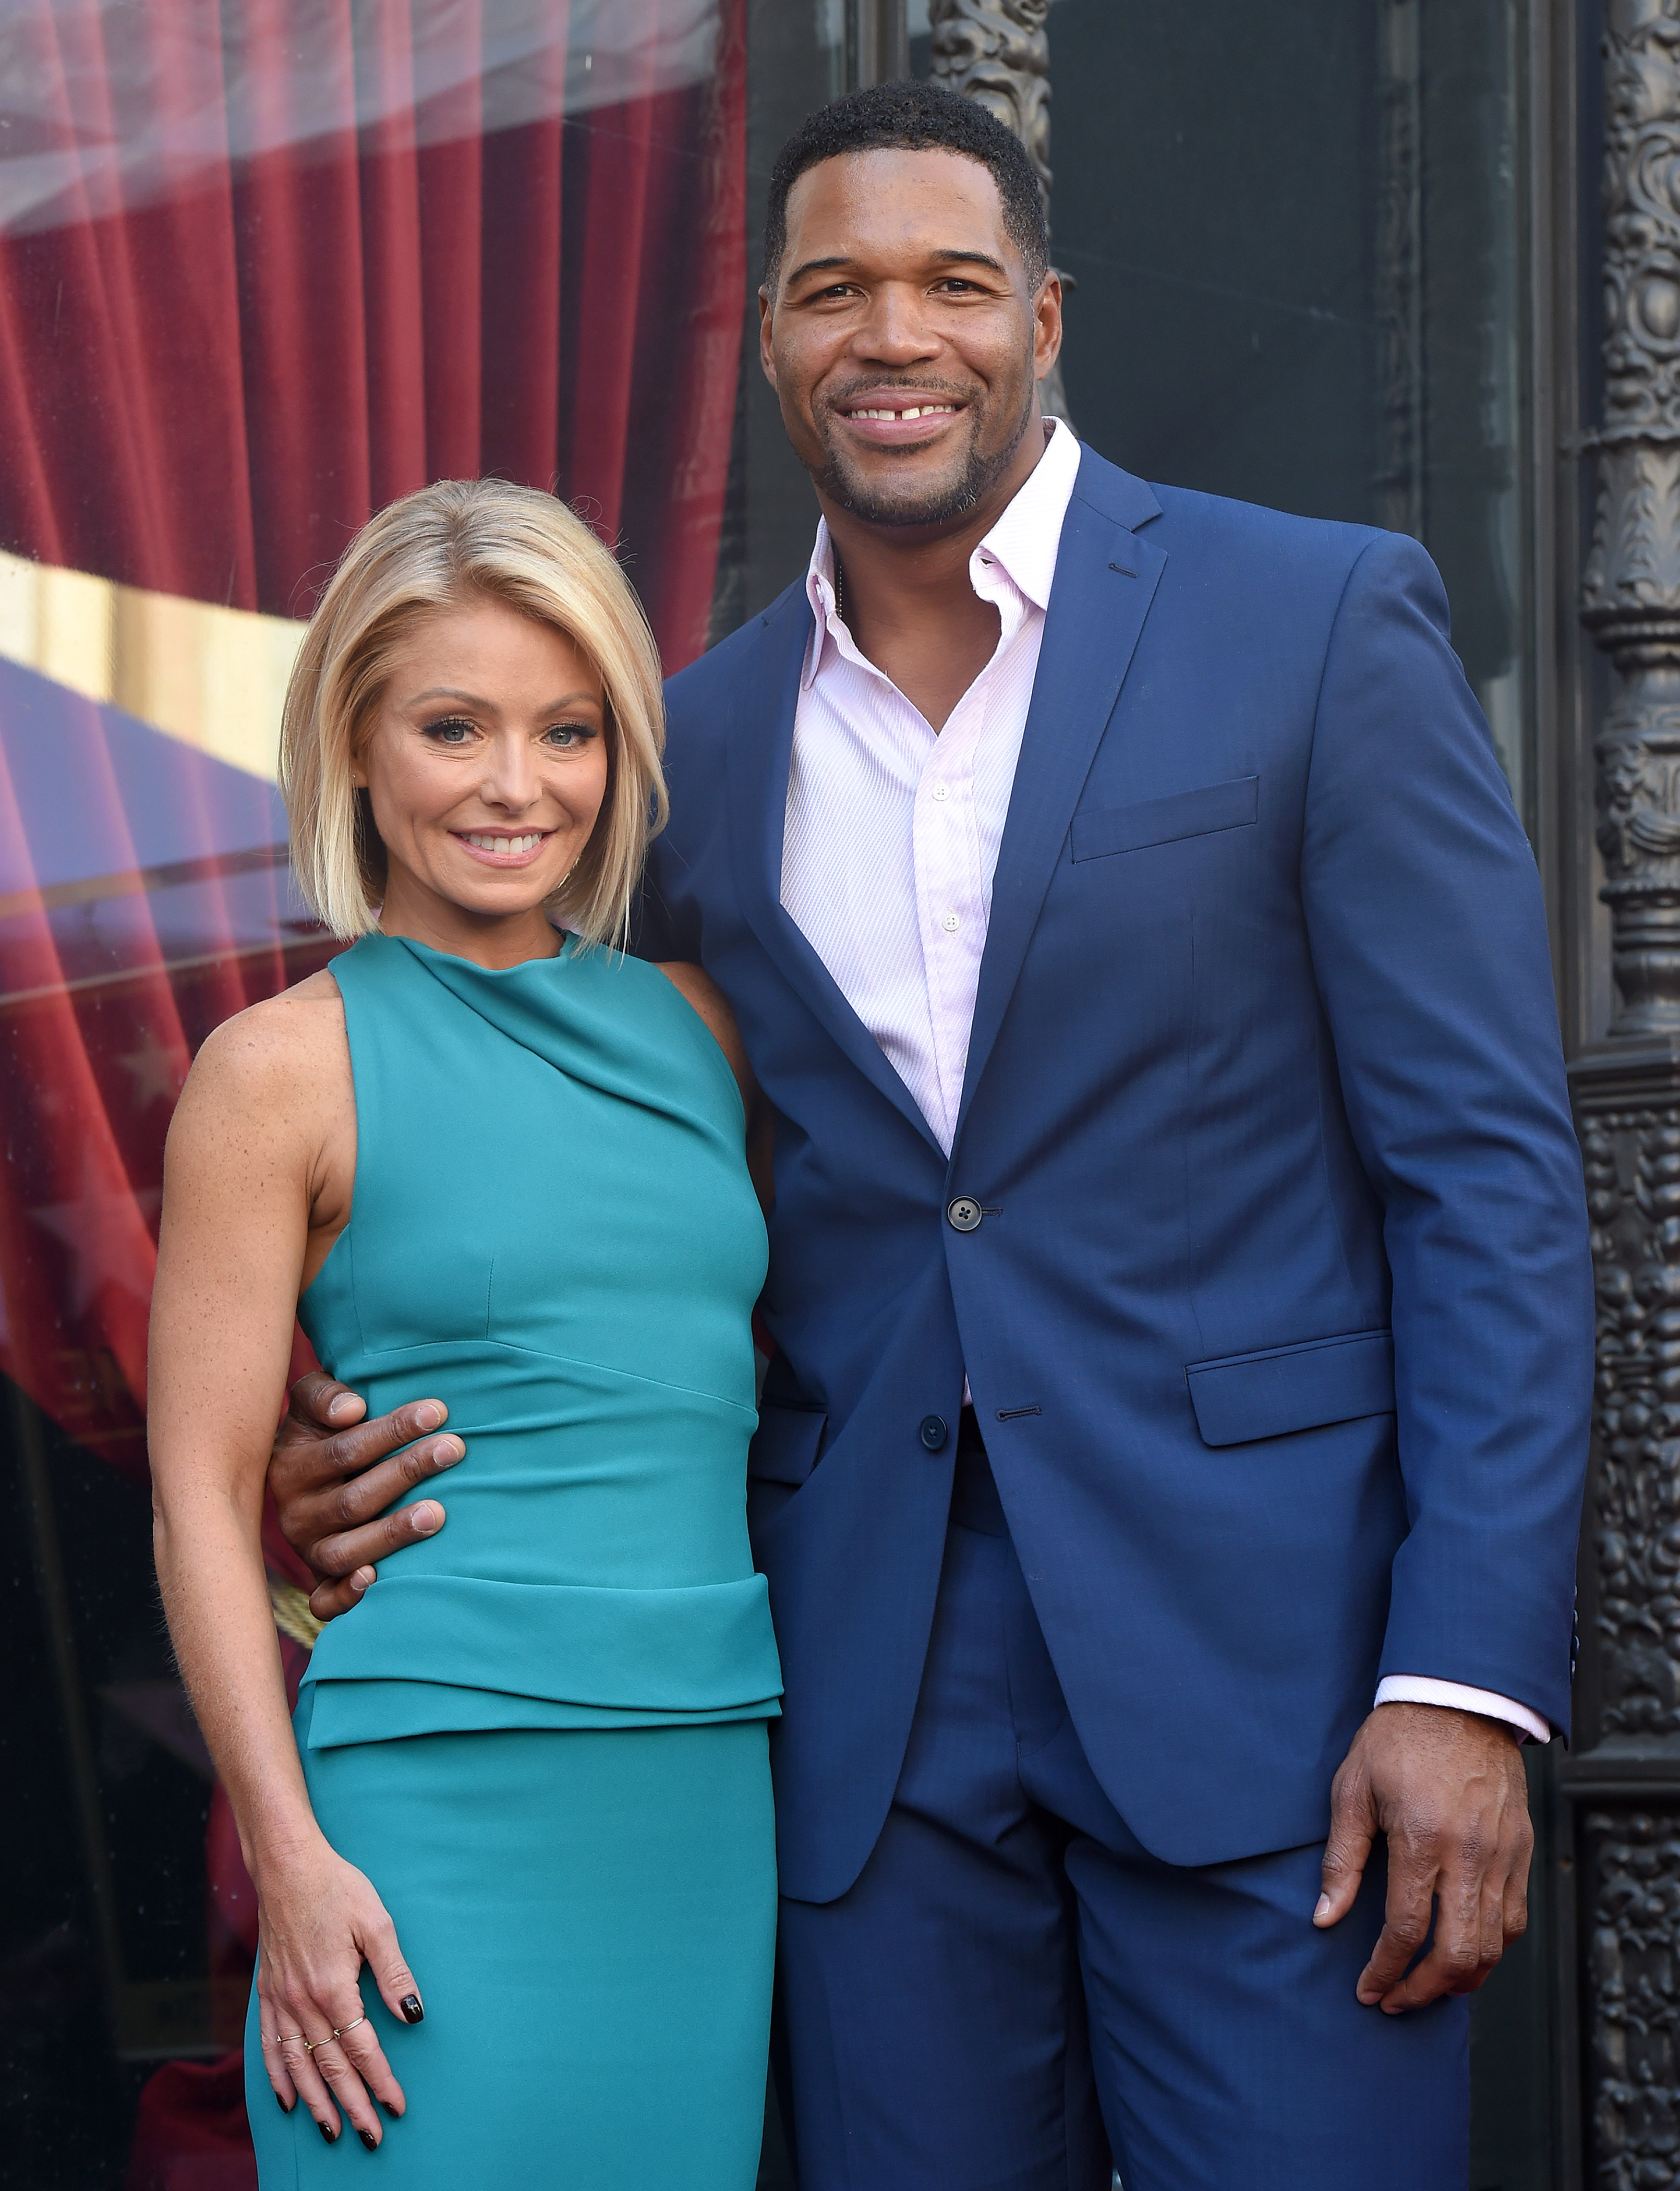 Kelly Ripa and Michael Strahan attend the ceremony honoring Kelly Ripa with a star on the Hollywood Walk of Fame on October 12, 2015 in Hollywood, California. Axelle/Bauer-Griffin—FilmMagic